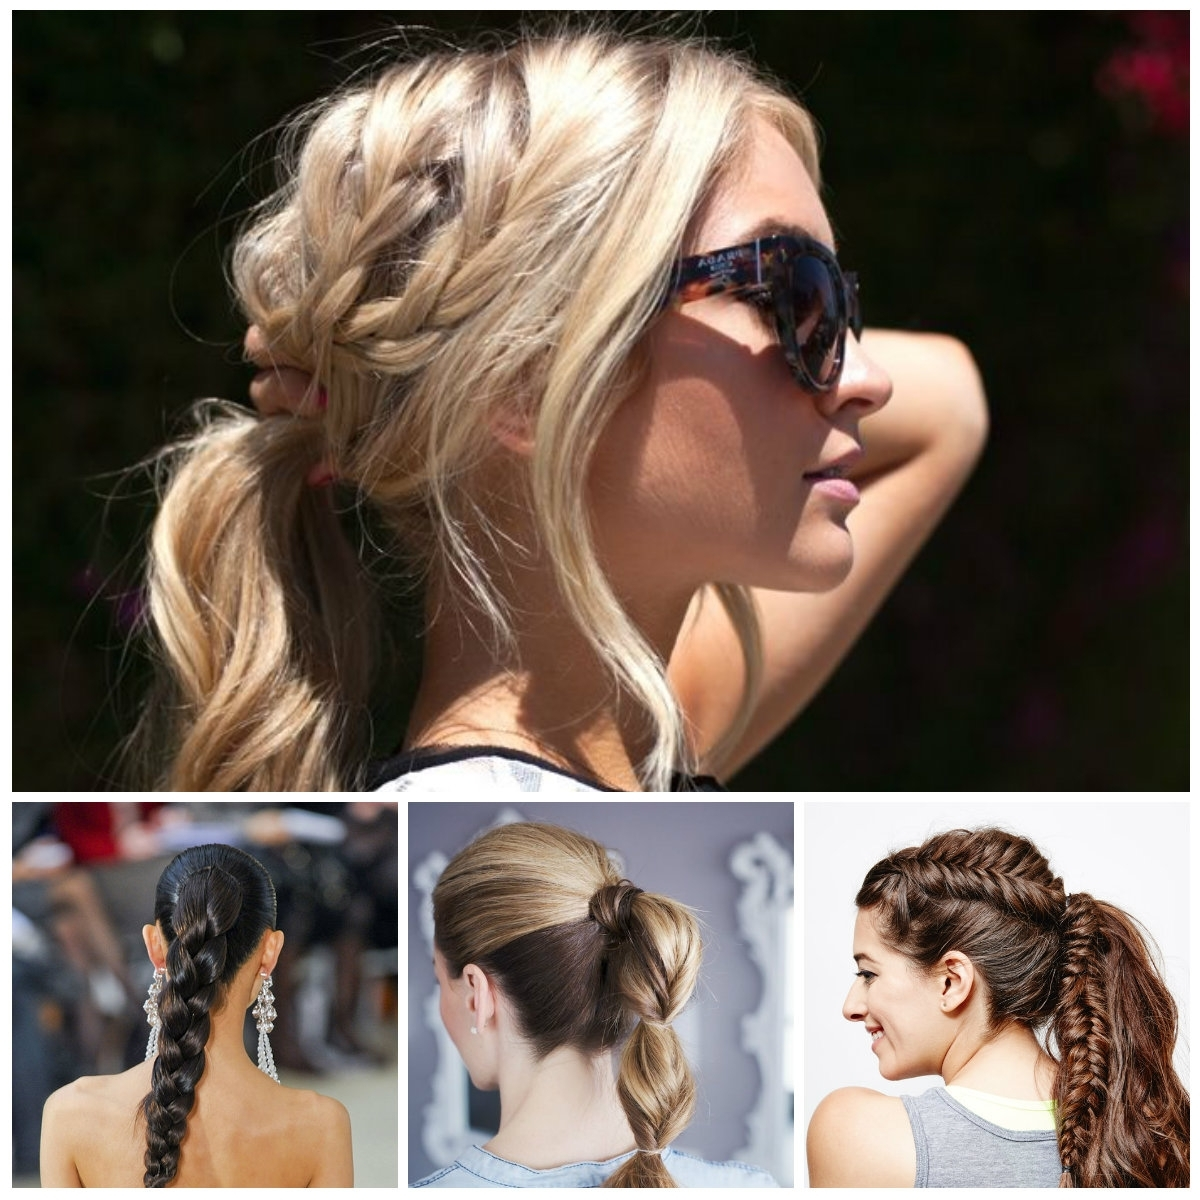 Well Liked Pony Hairstyles With Textured Braid For Braided Ponytail Hairstyle Trends 2017 – New Hairstyles 2017 For (View 19 of 20)